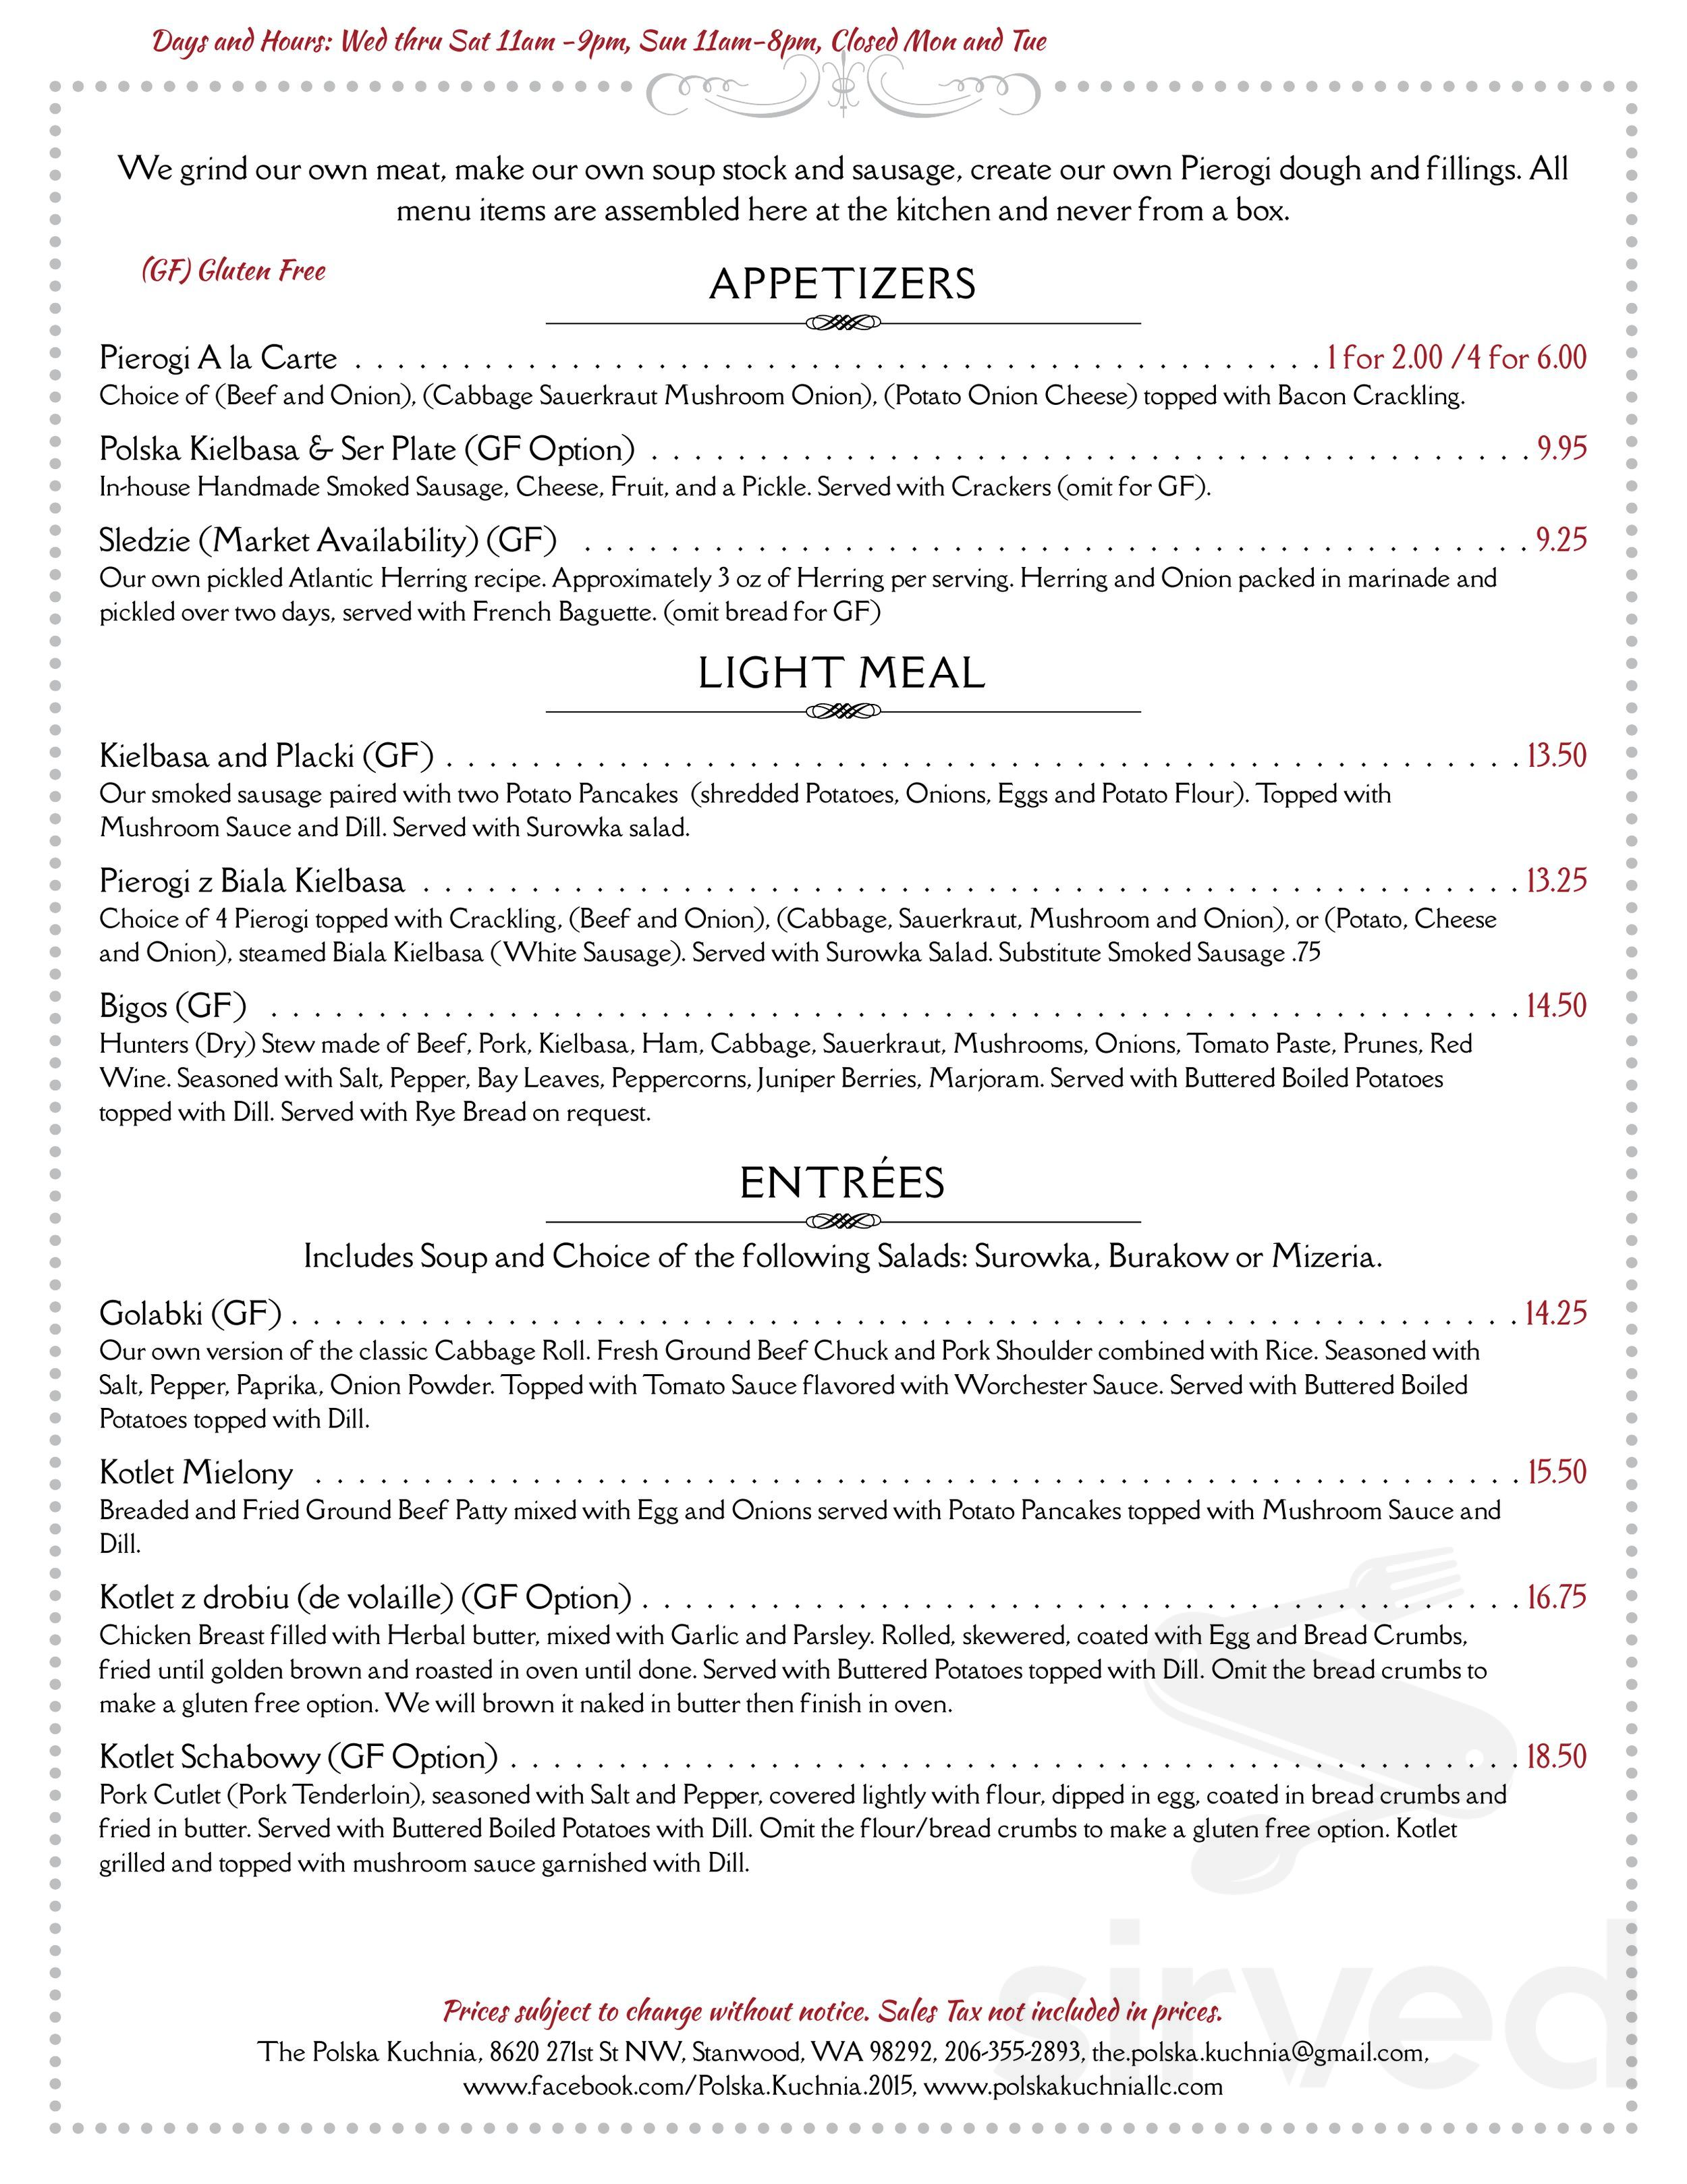 Menu For The Polska Kuchnia In Stanwood Washington Usa